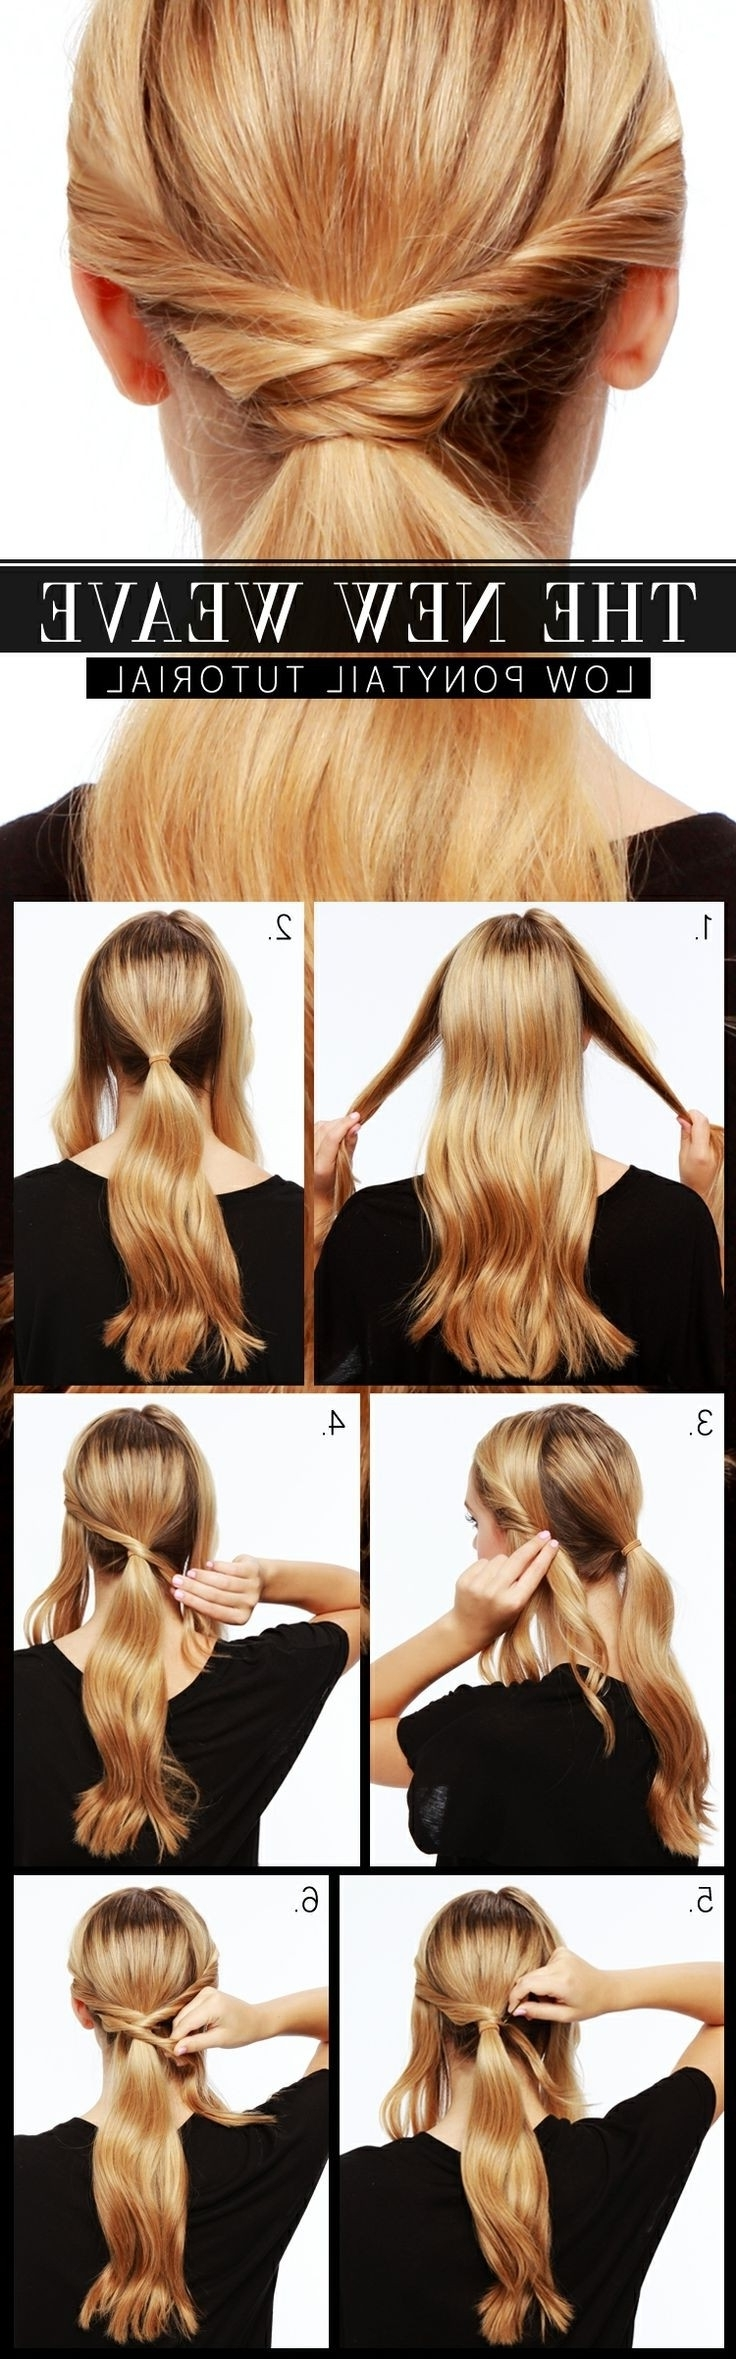 Fashionable Easy High Pony Hairstyles For Curly Hair In 15 Cute & Easy Ponytails – Sure Champ (View 7 of 20)